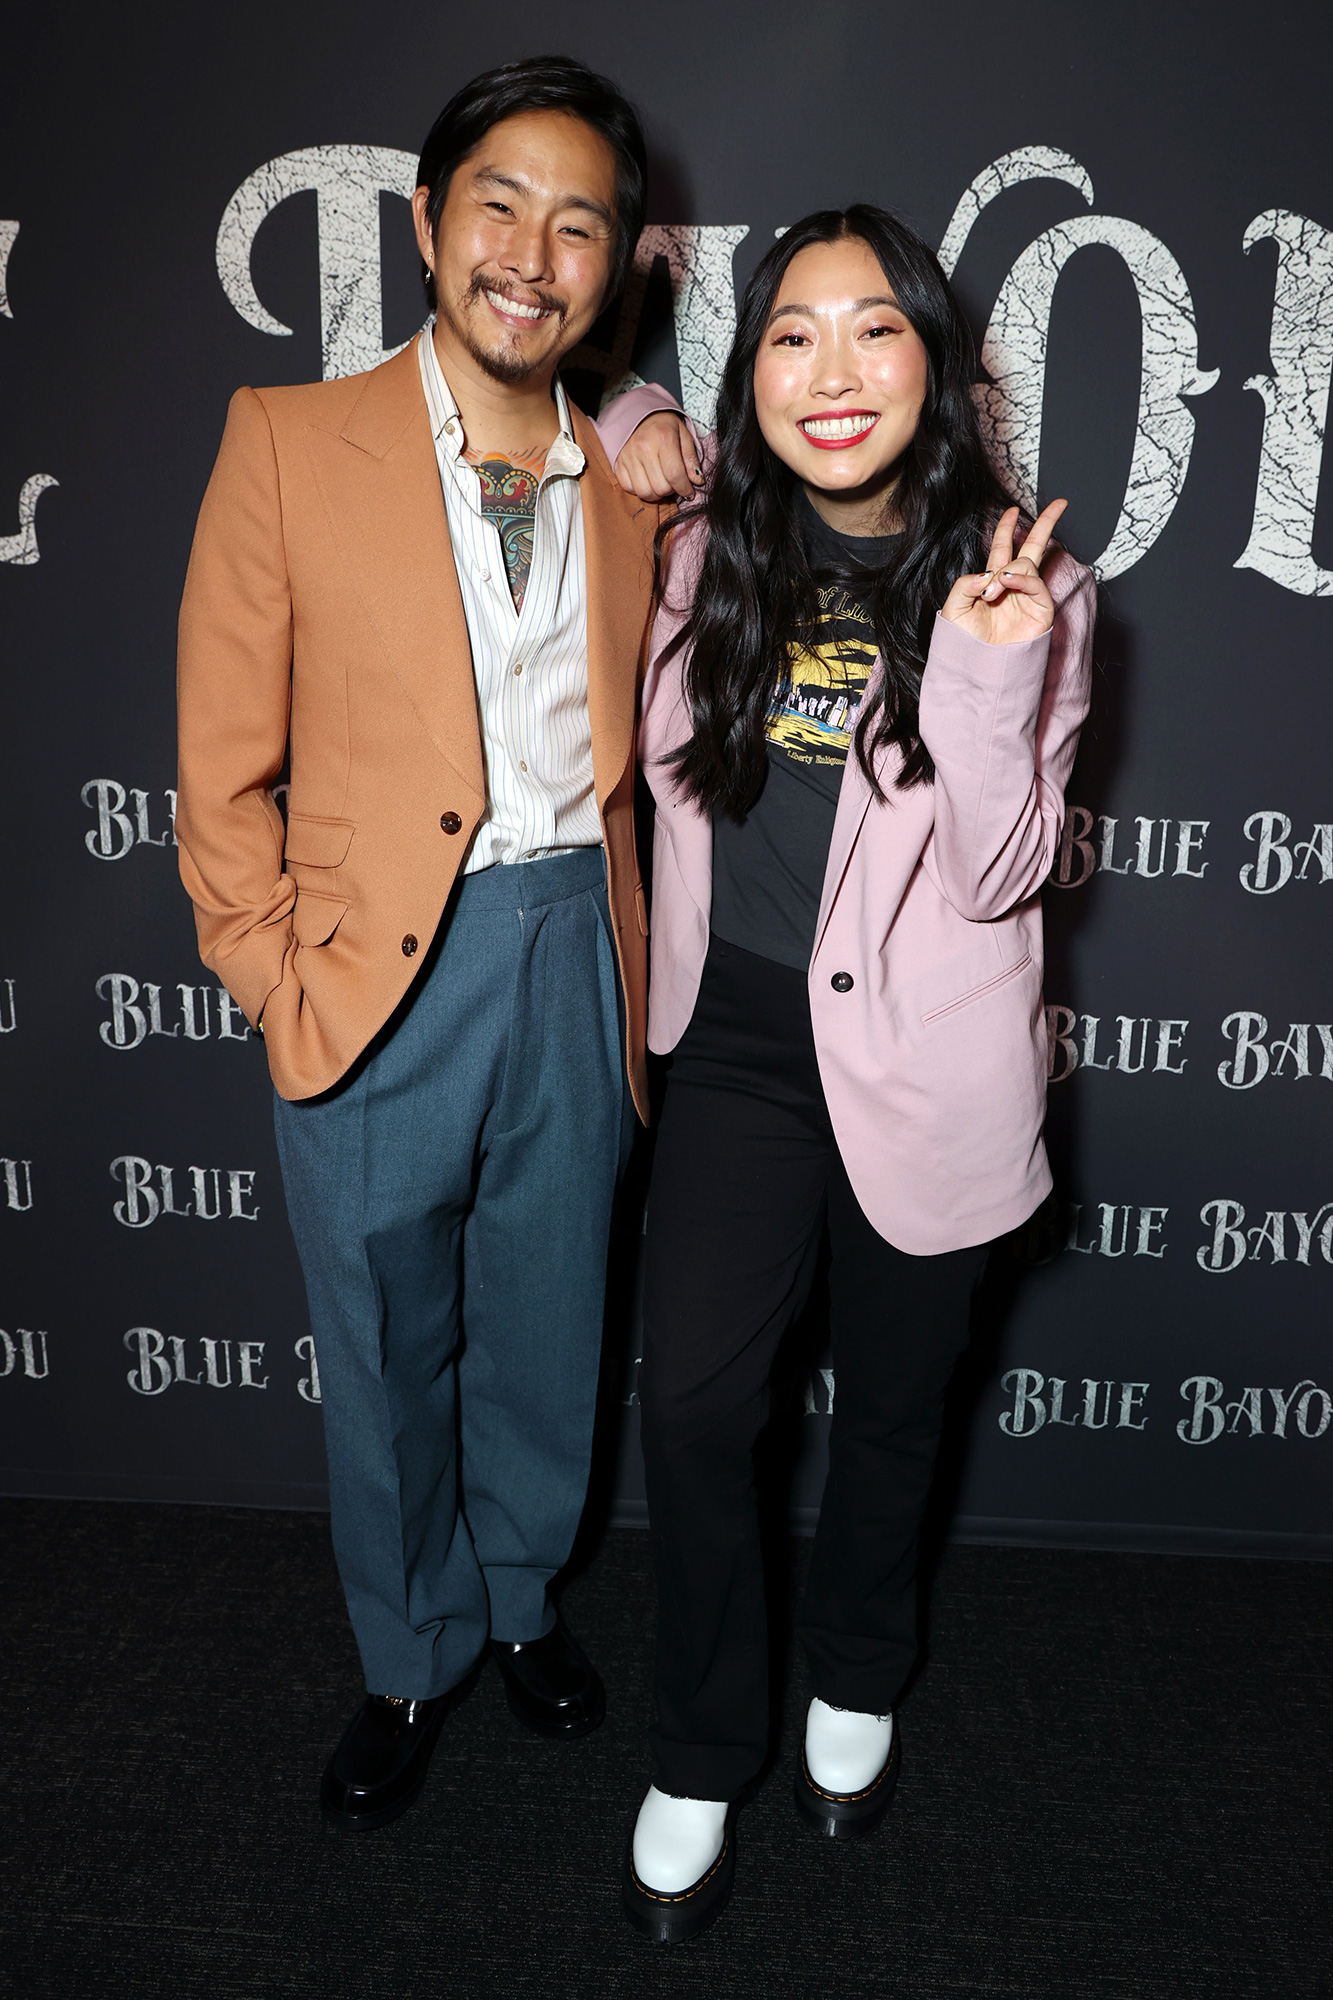 Director Justin Chon and Awkwafina Focus Features BLUE BAYOU Los Angeles Premiere, Los Angeles, CA, USA - 14 September 2021